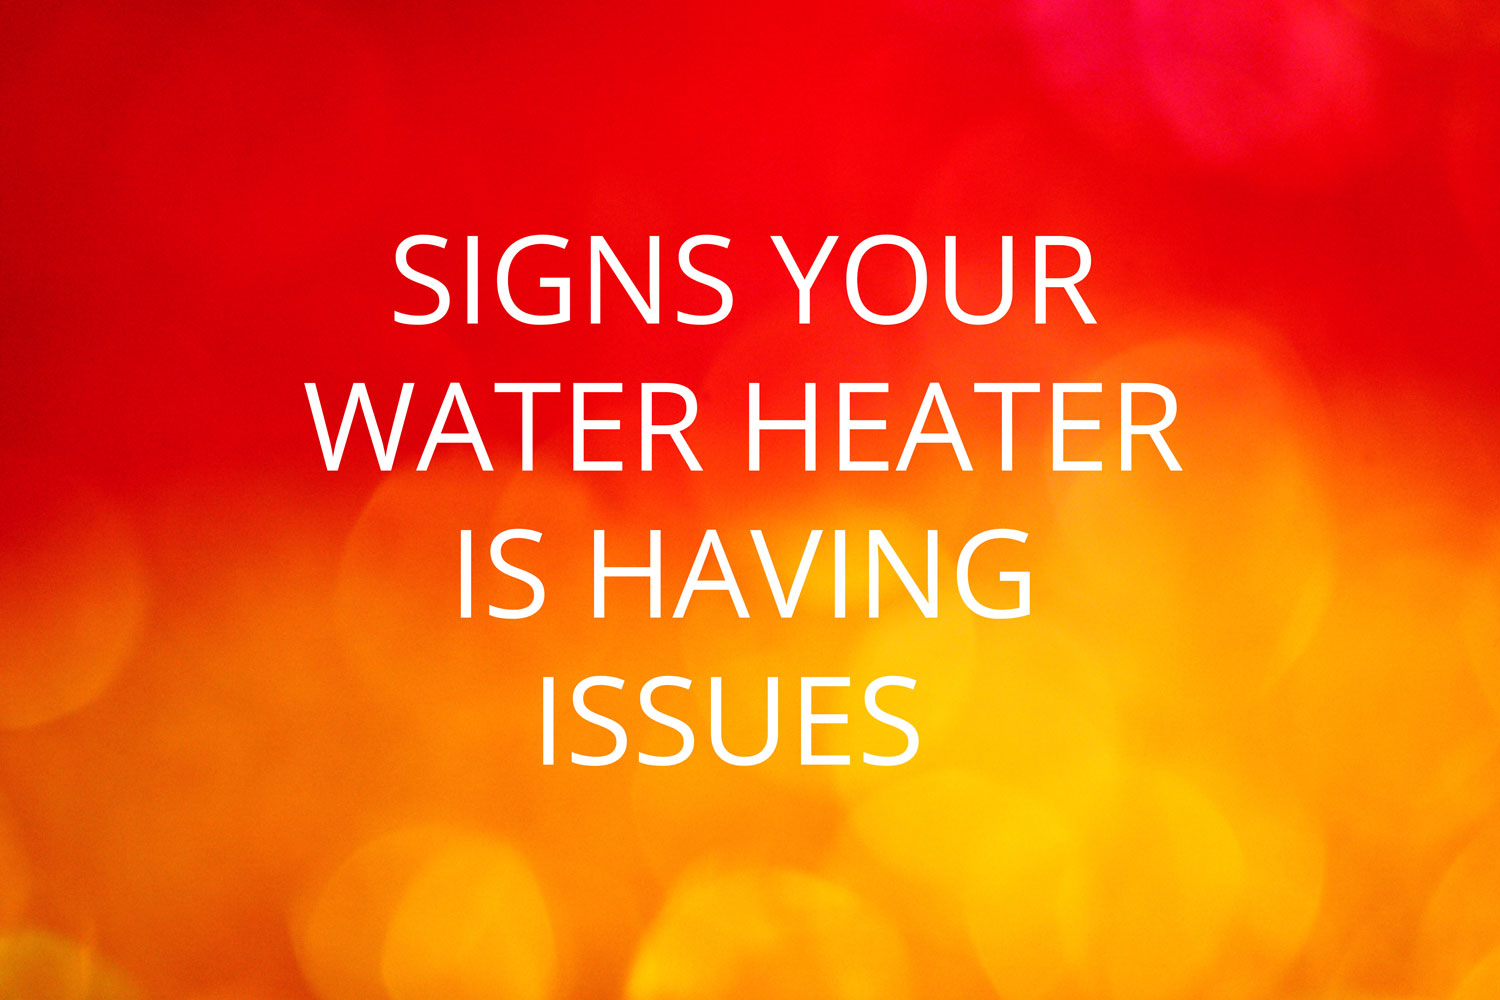 Signs Your Water Heater is Having Issues